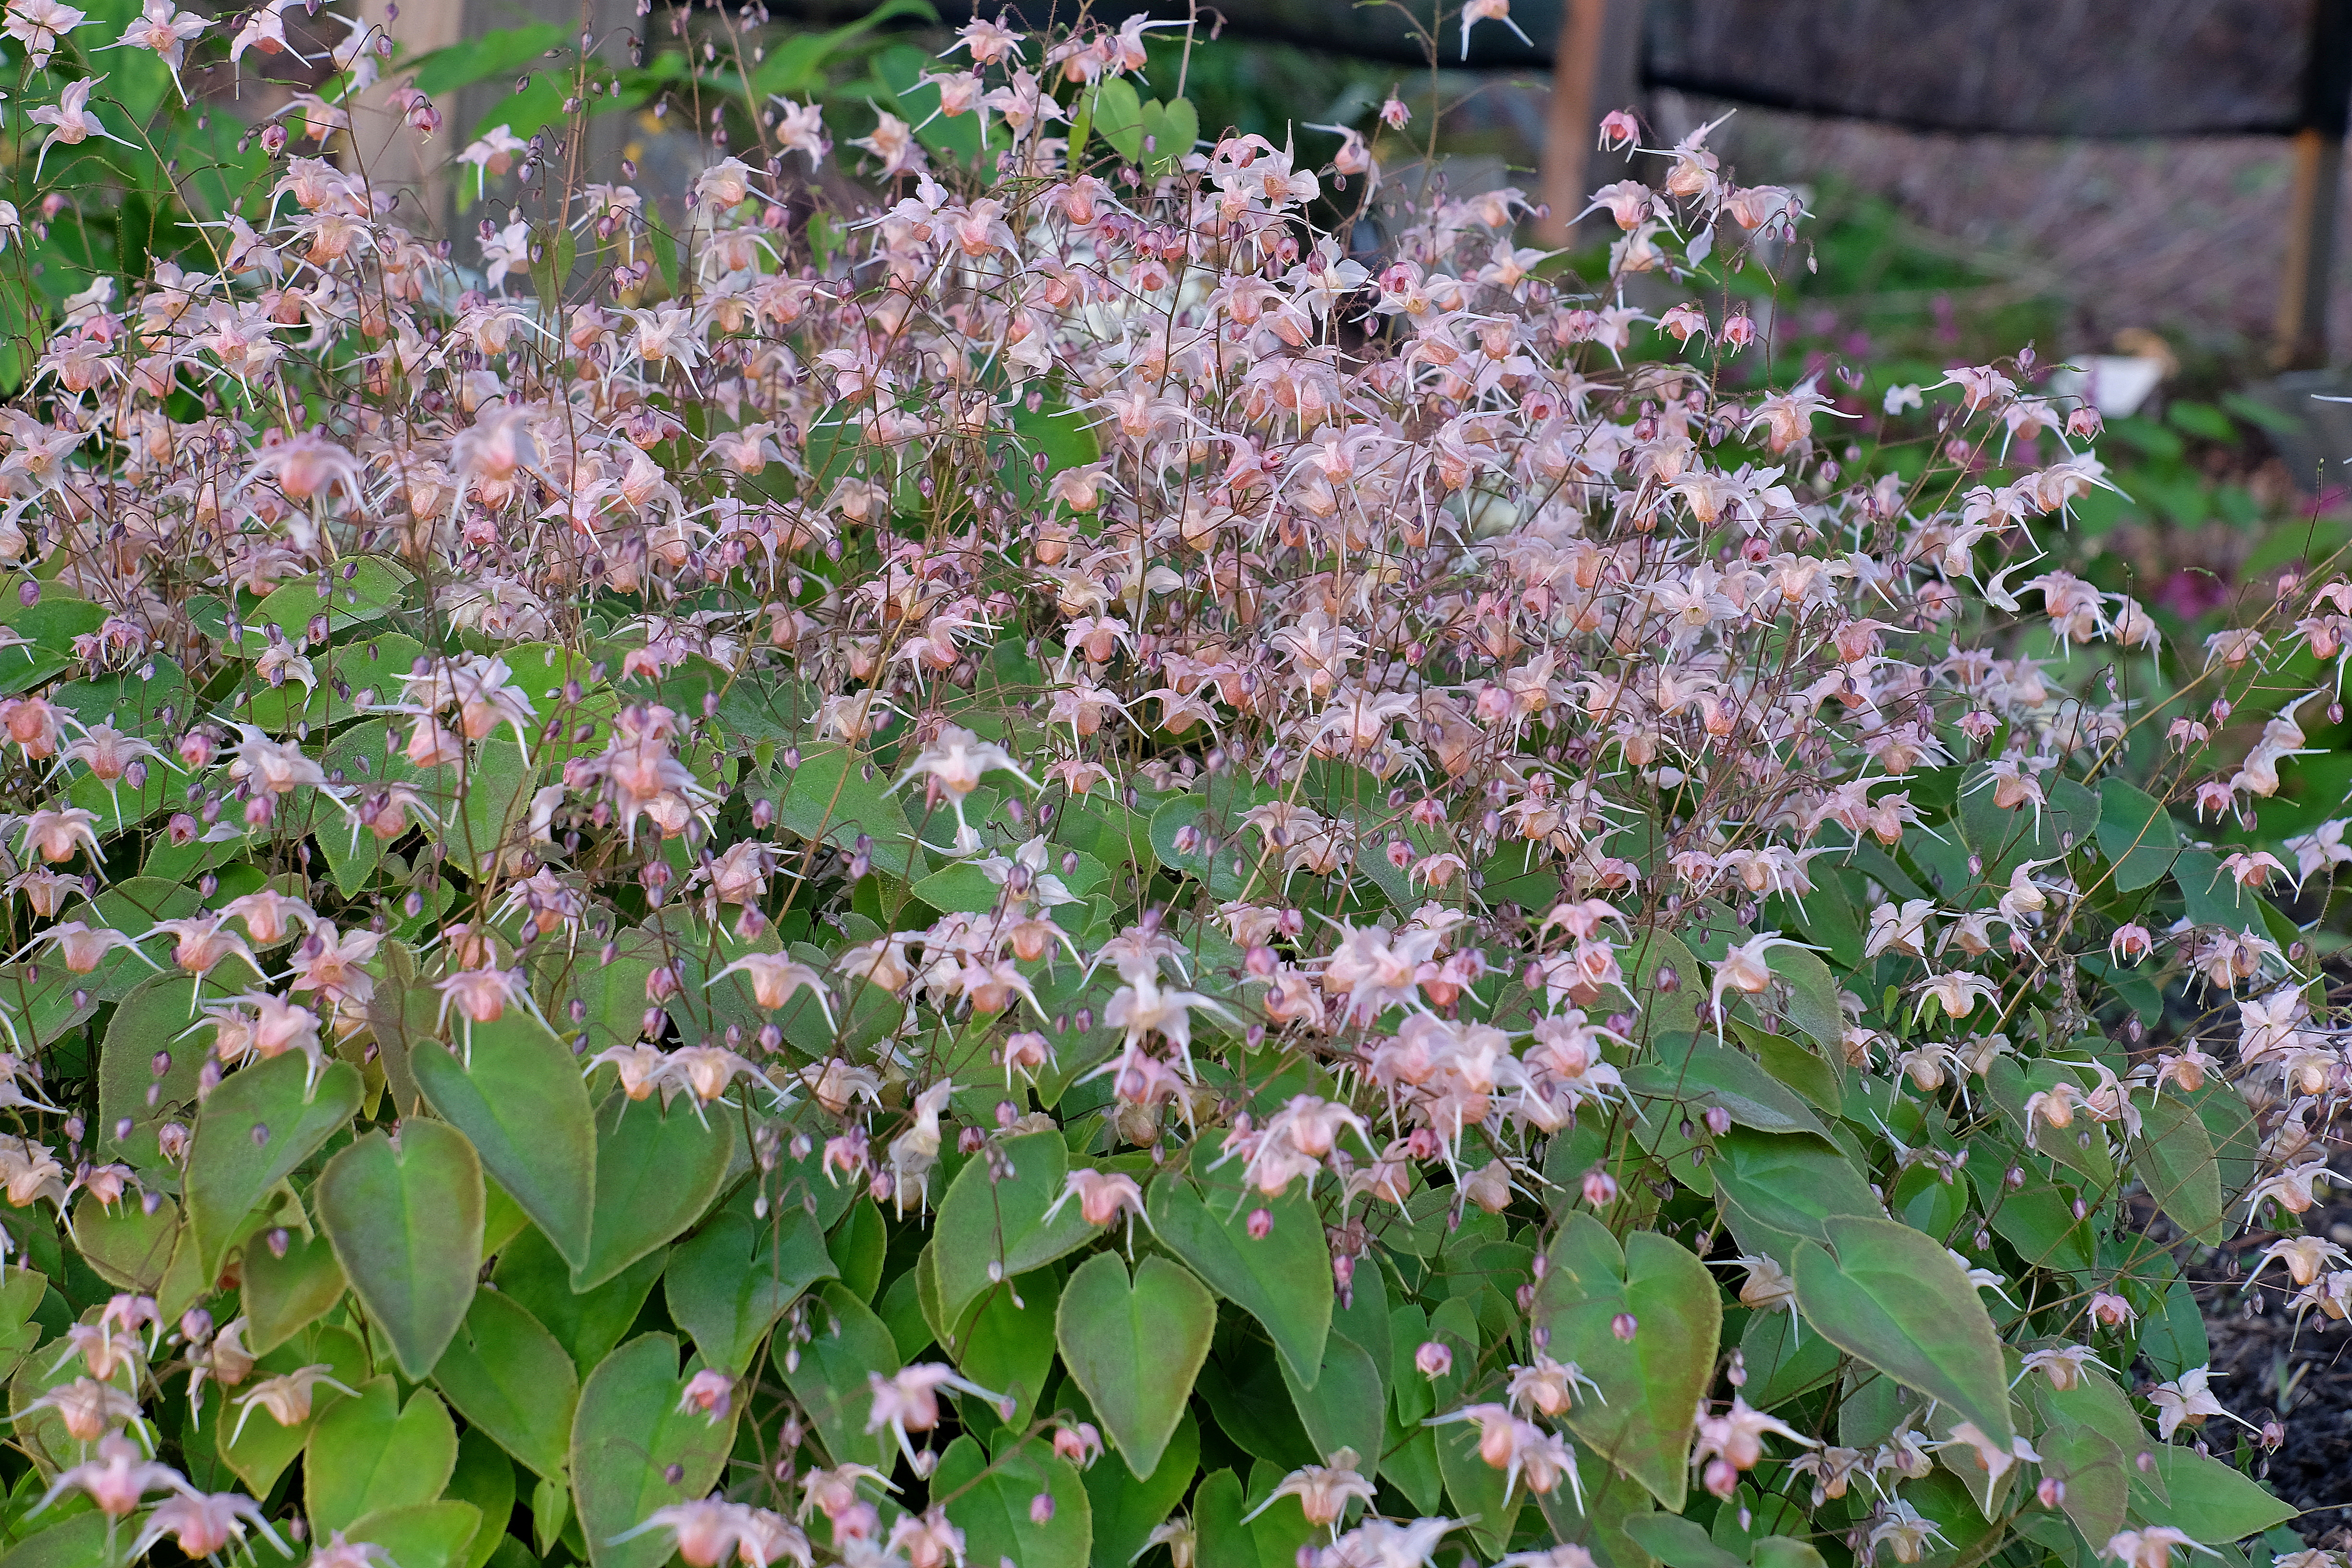 Epimedium 'Peachie' @ JLBG (PDN10-014) - a 2018 JLBG/PDN introduction